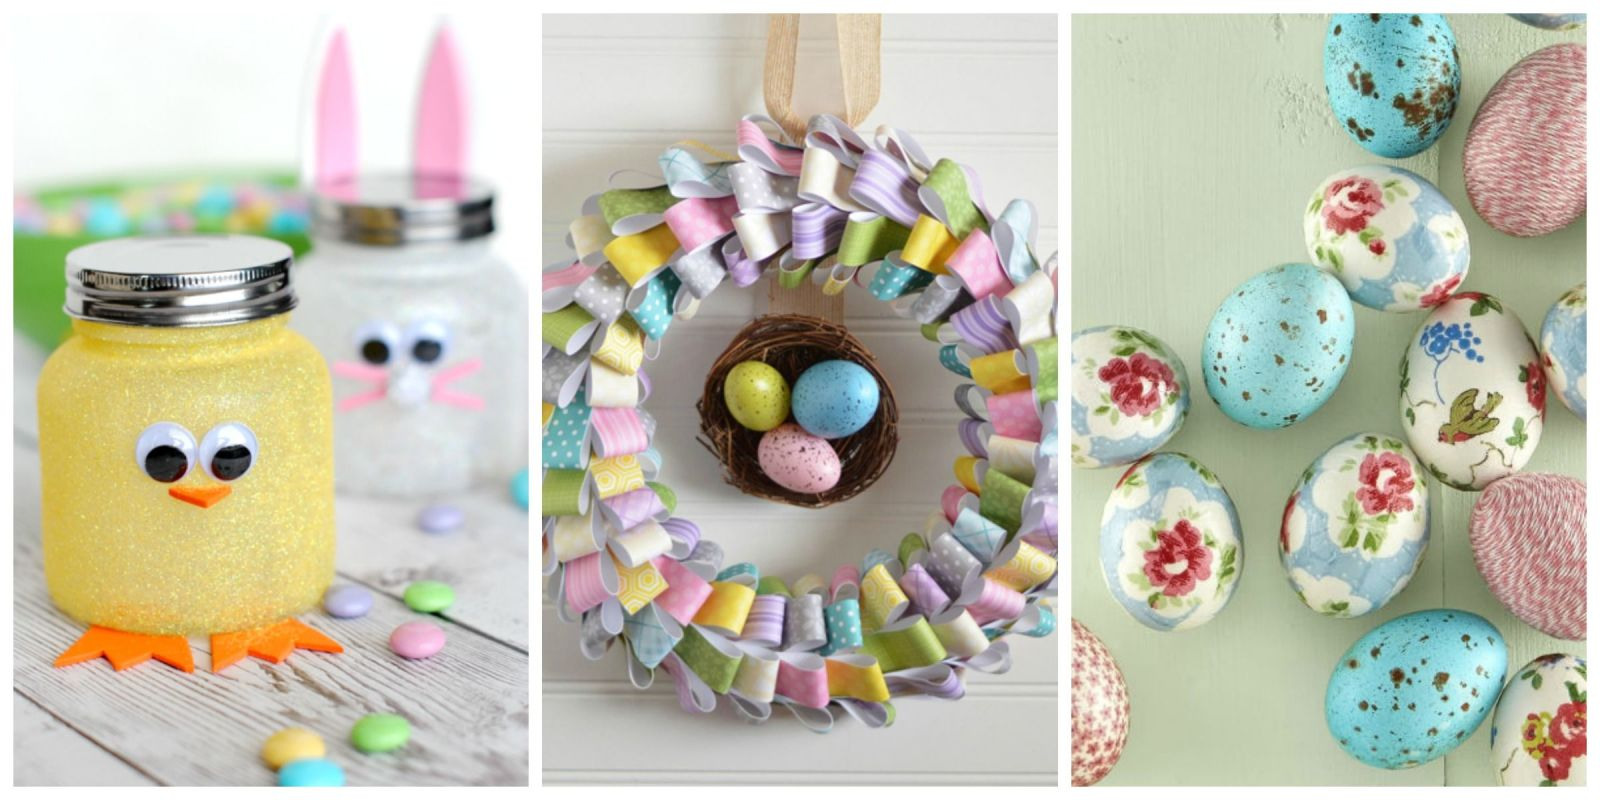 60 Easy Easter Crafts - Ideas for Easter DIY Decorations & Gifts ...